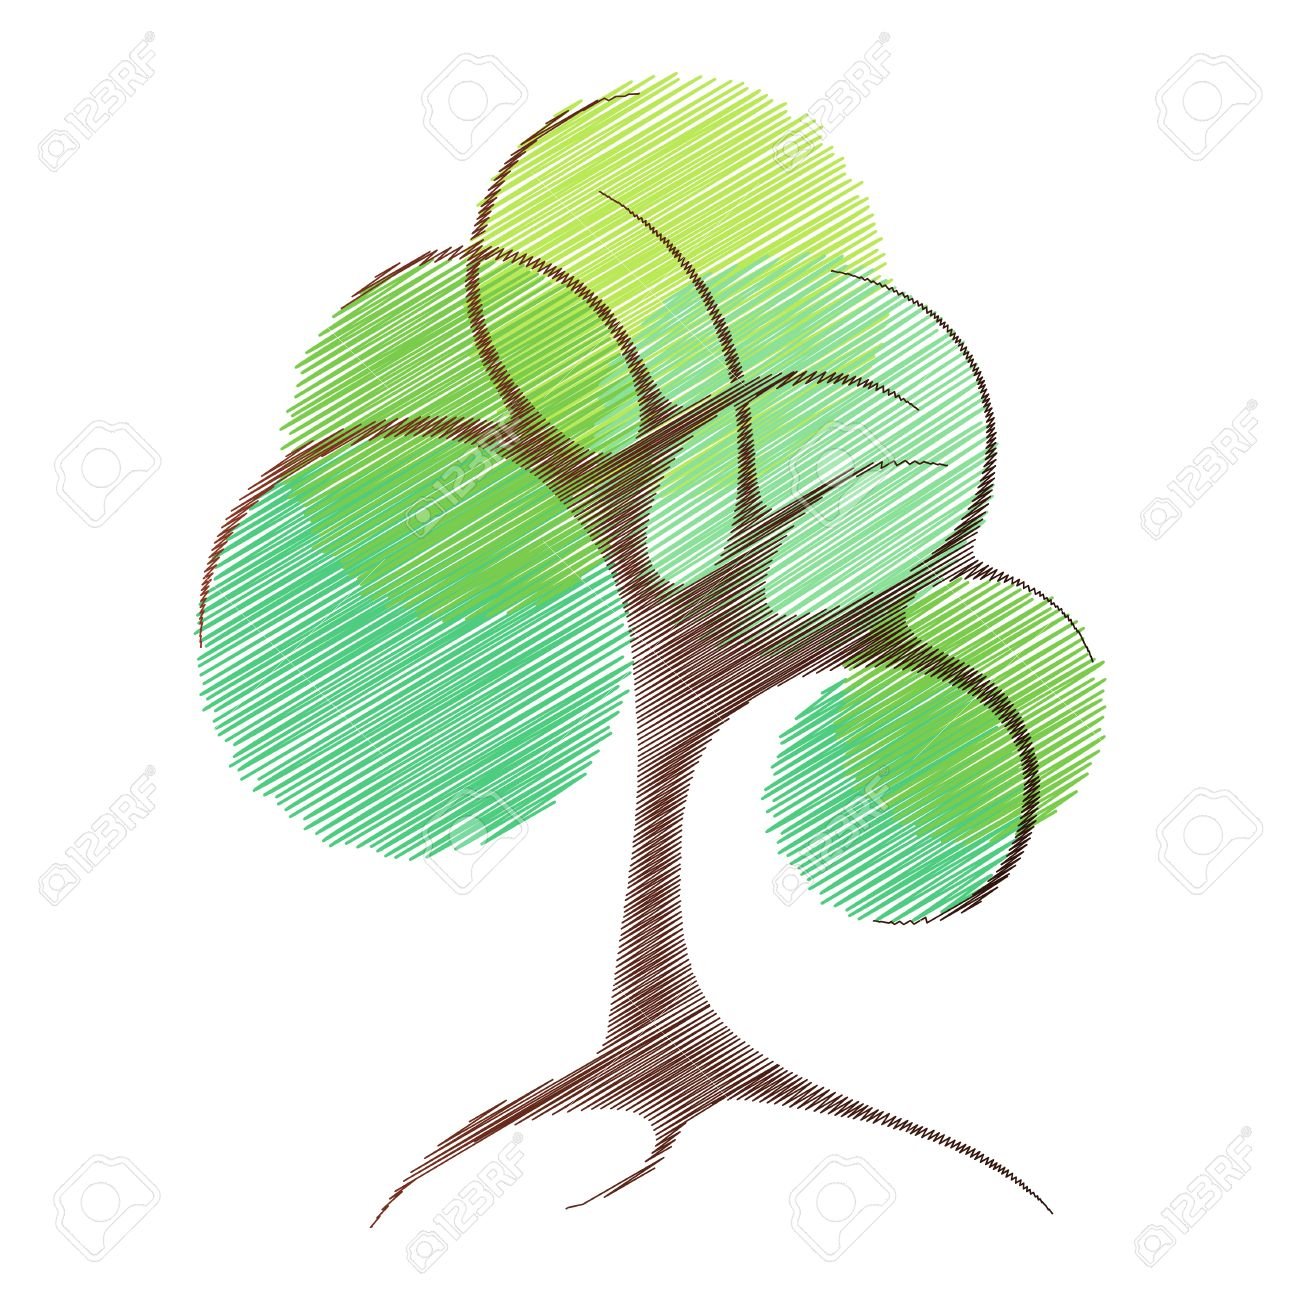 Abstract Vector Tree. Sketch of stylized tree. - 36904157